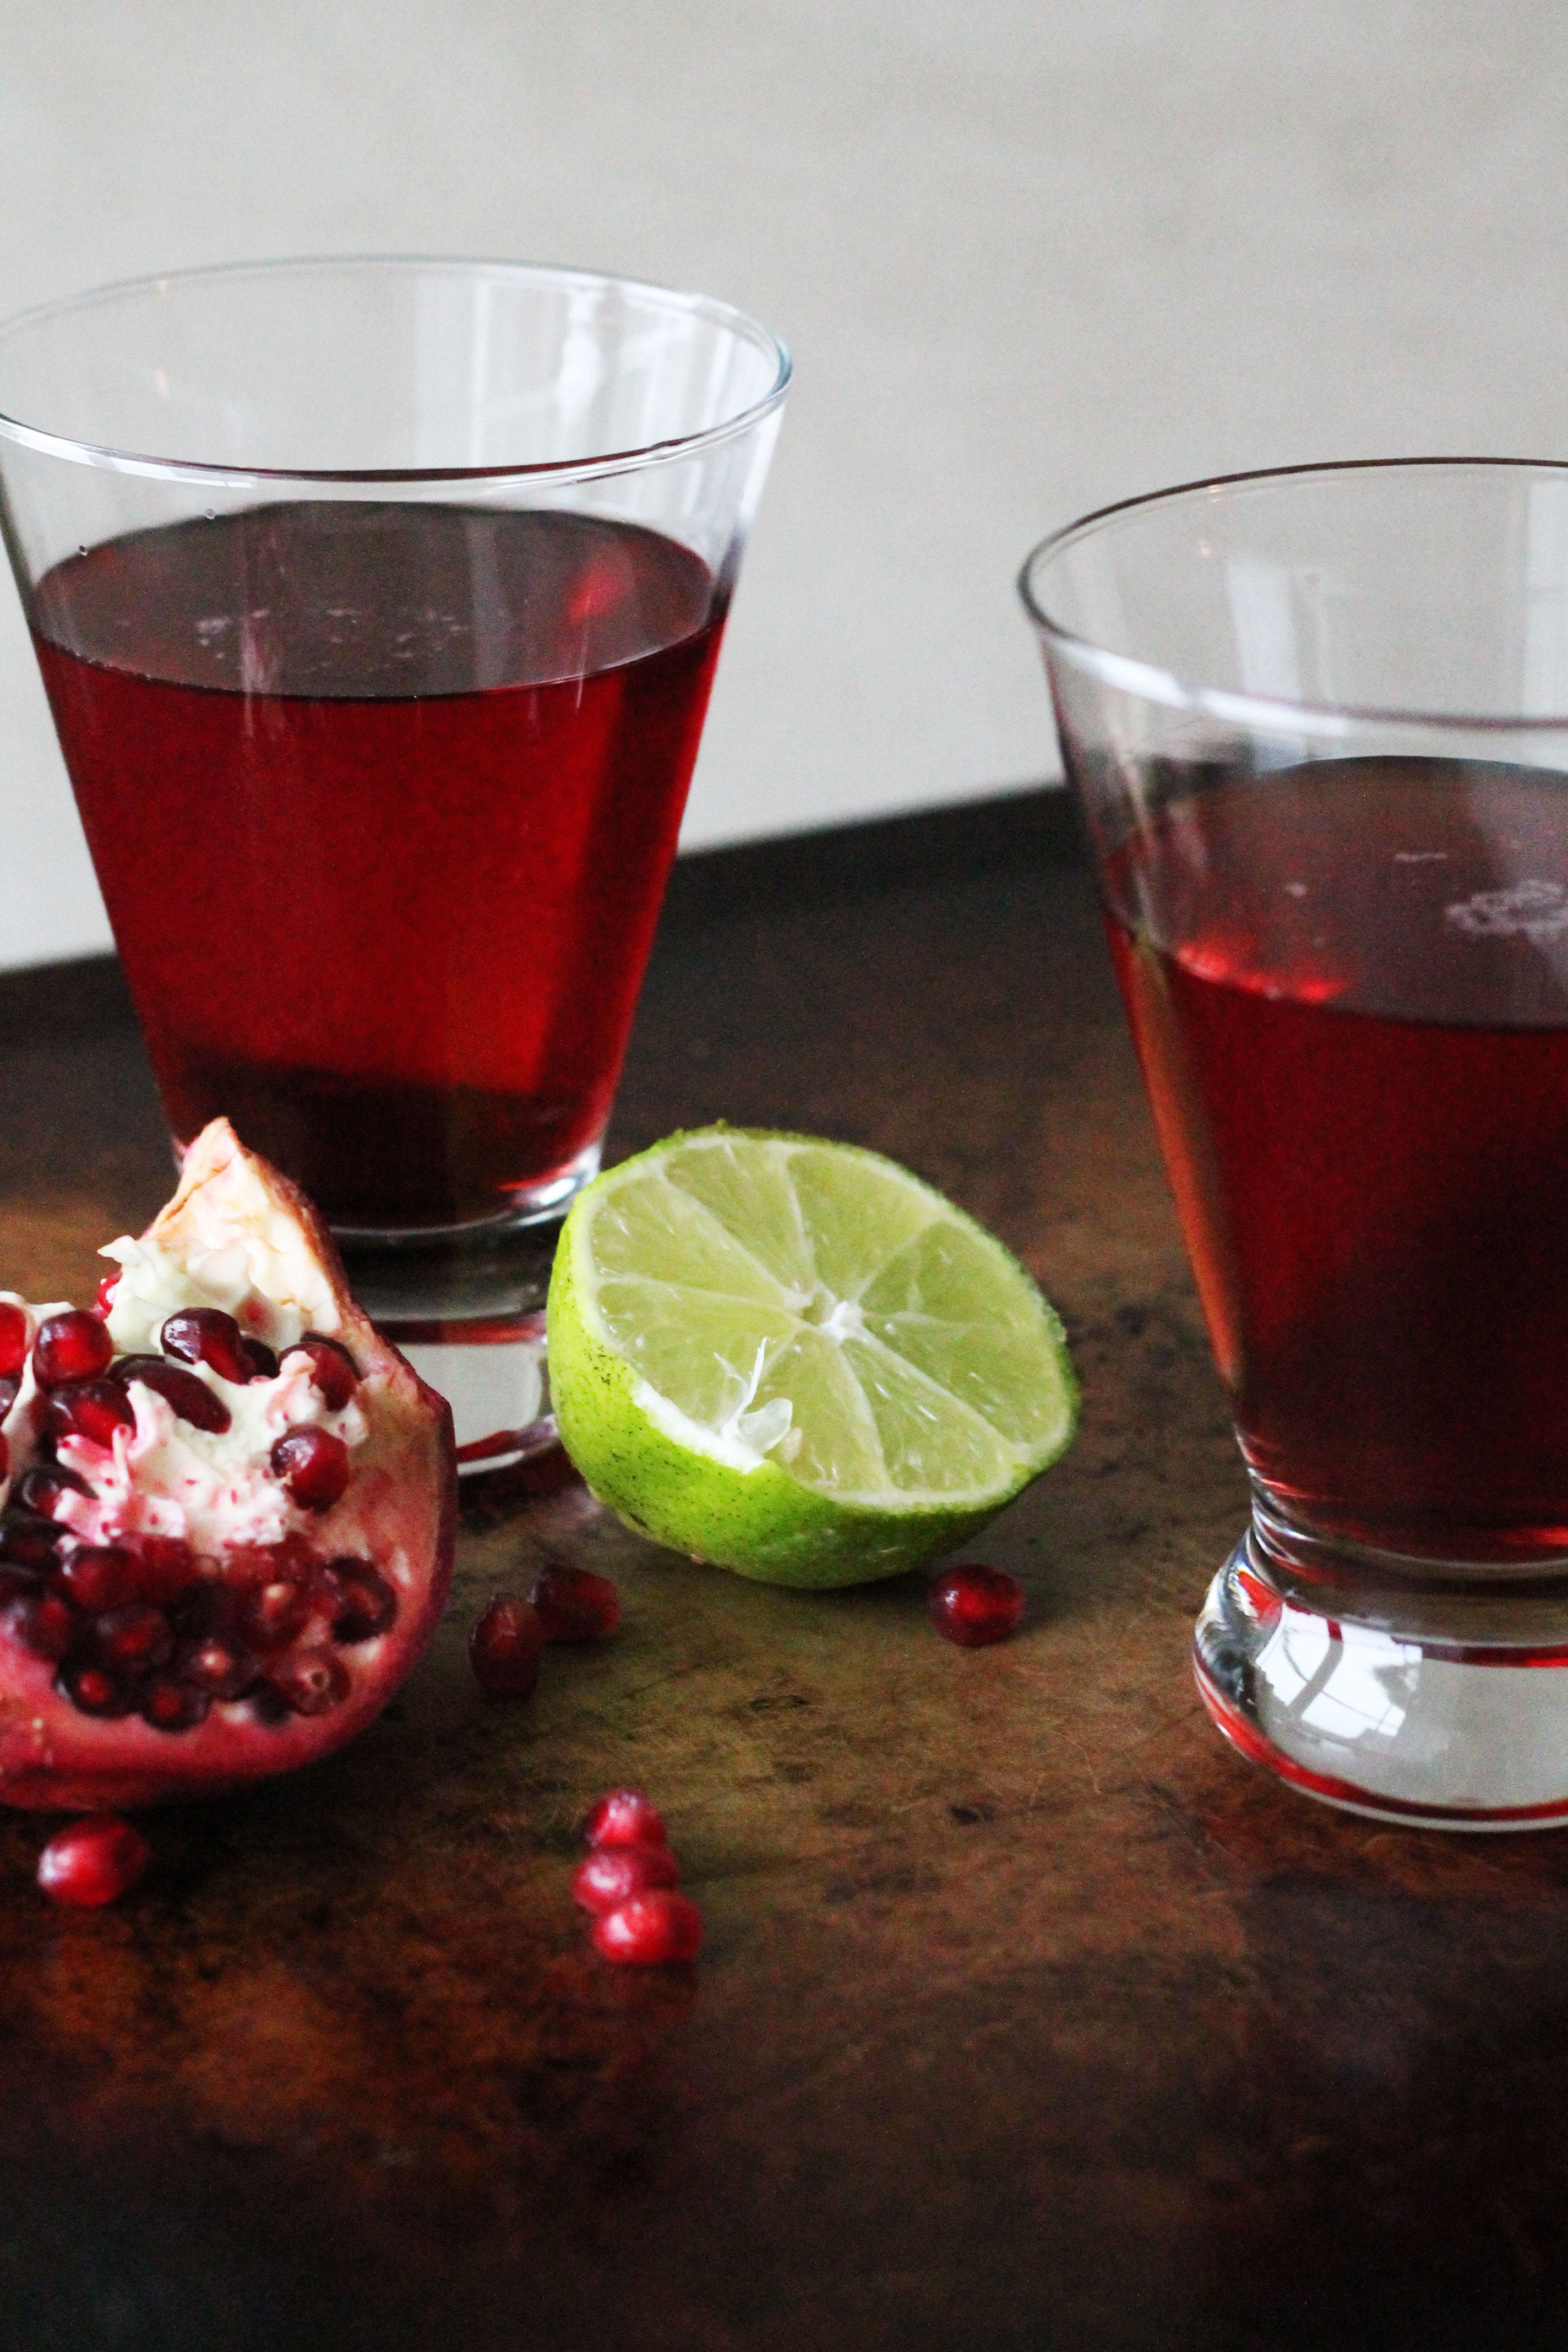 A festive and winter cocktail - Pomegranate Lime Martini